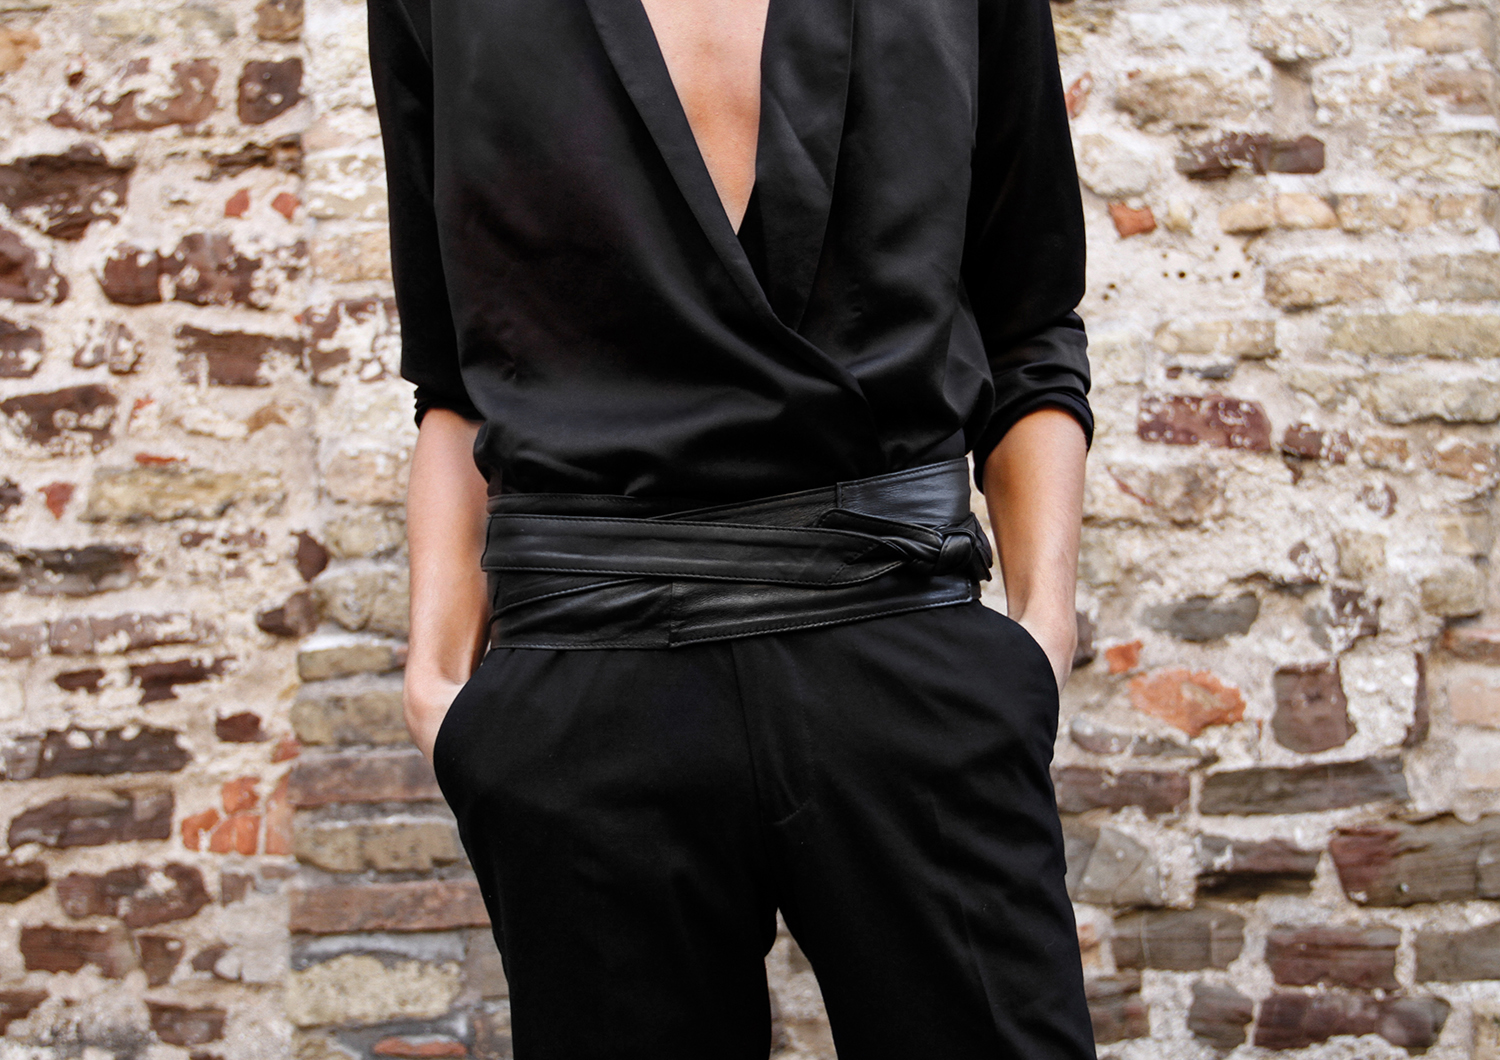 Look_GeorgMallner_Silk_Pyjama_PyjamaLook_outfitoftheday_Ourfit_style_Leather_cummrebund_Suitpants_Asos_Italy_Photoshoot_Streetstyle_editorial_2